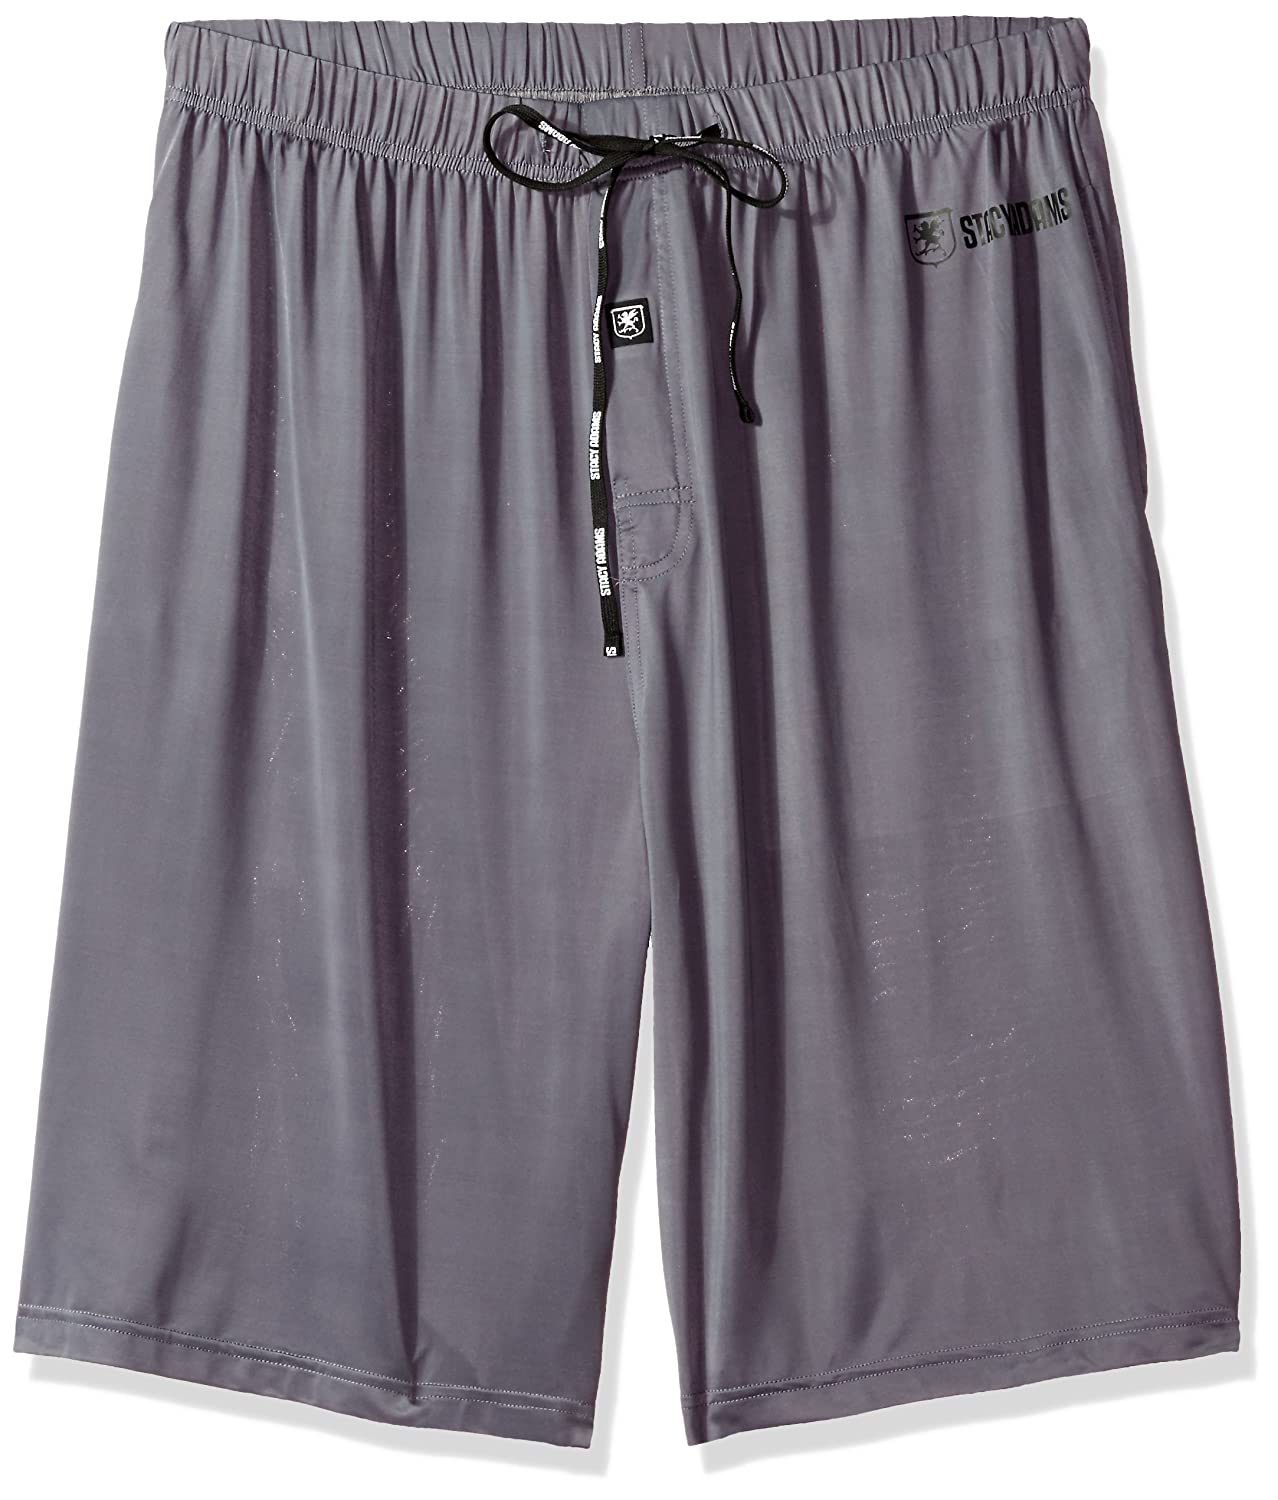 STACY ADAMS Tall Men's Big Sleep Short Stacy Adams Men's Basics SA9000BIG